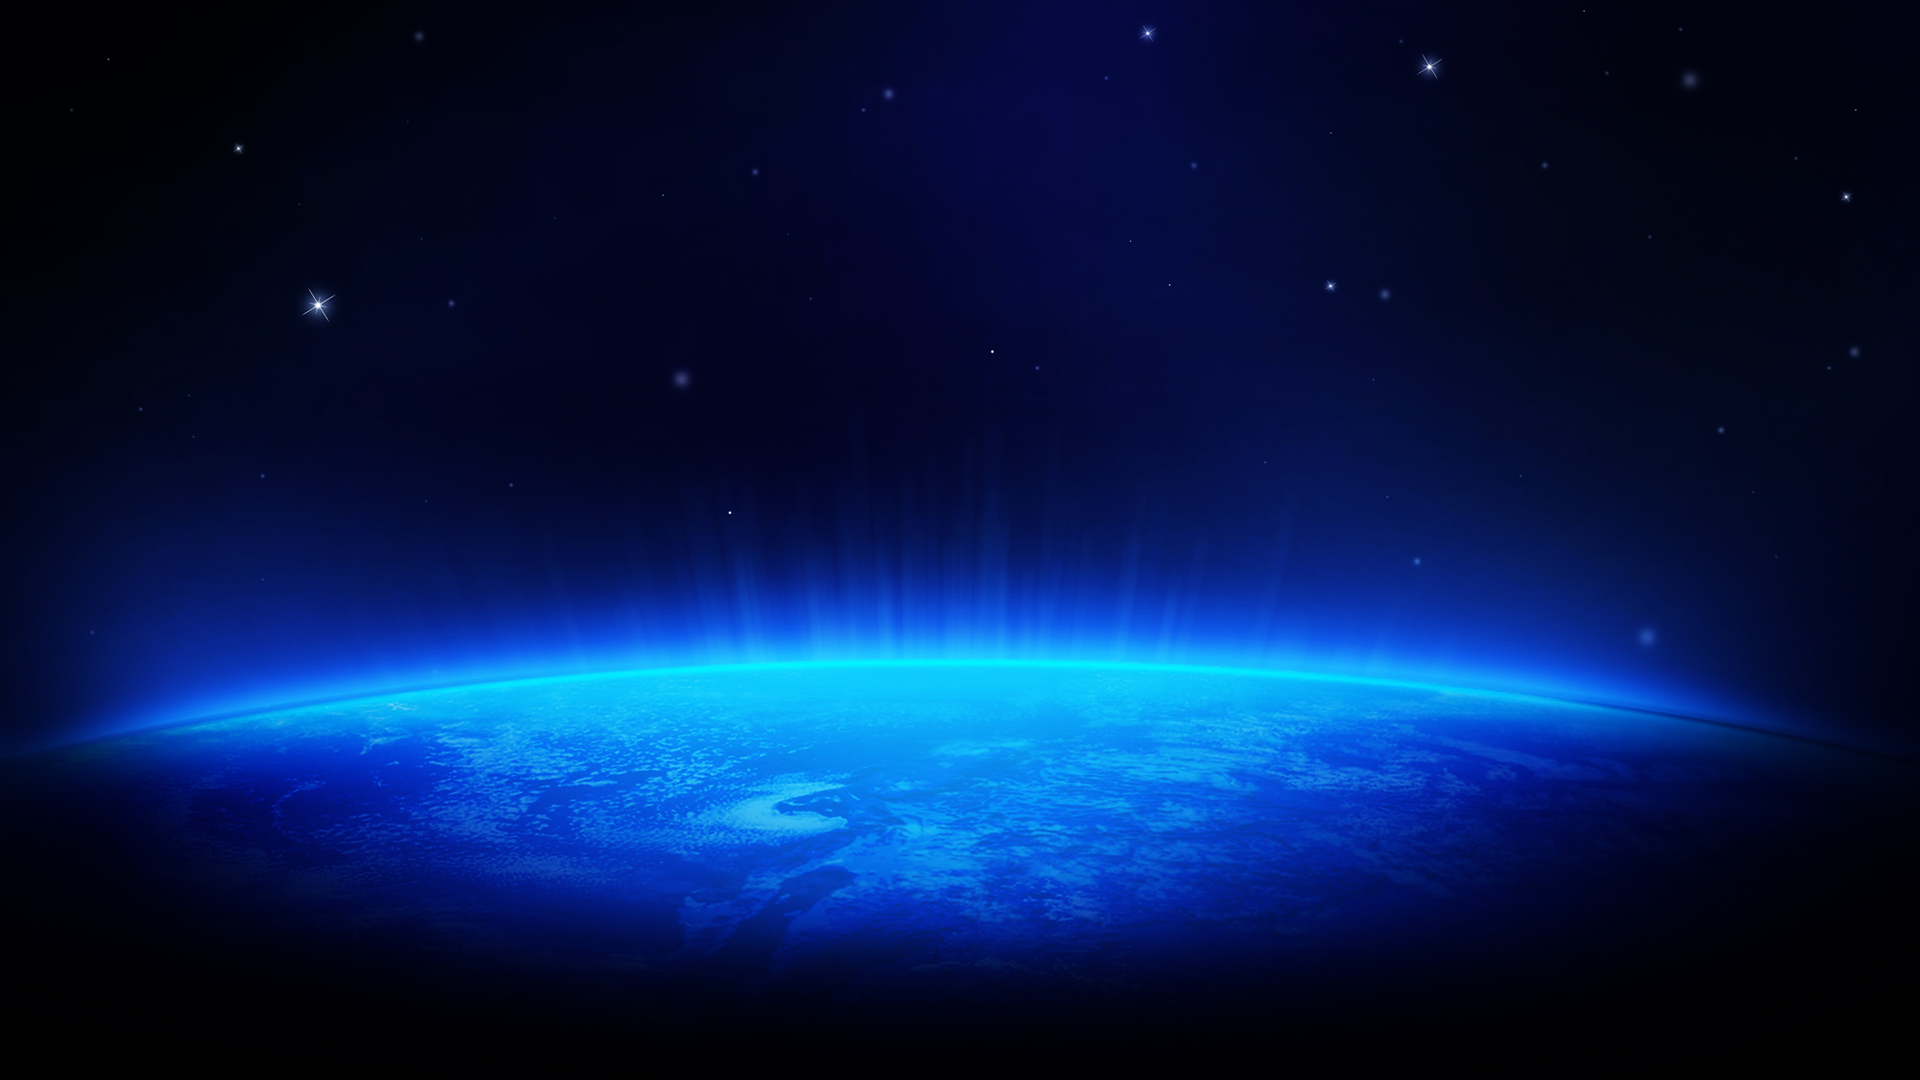 Blue Space HD Wallpaper 1080p HD Wallpapers 1920x1080